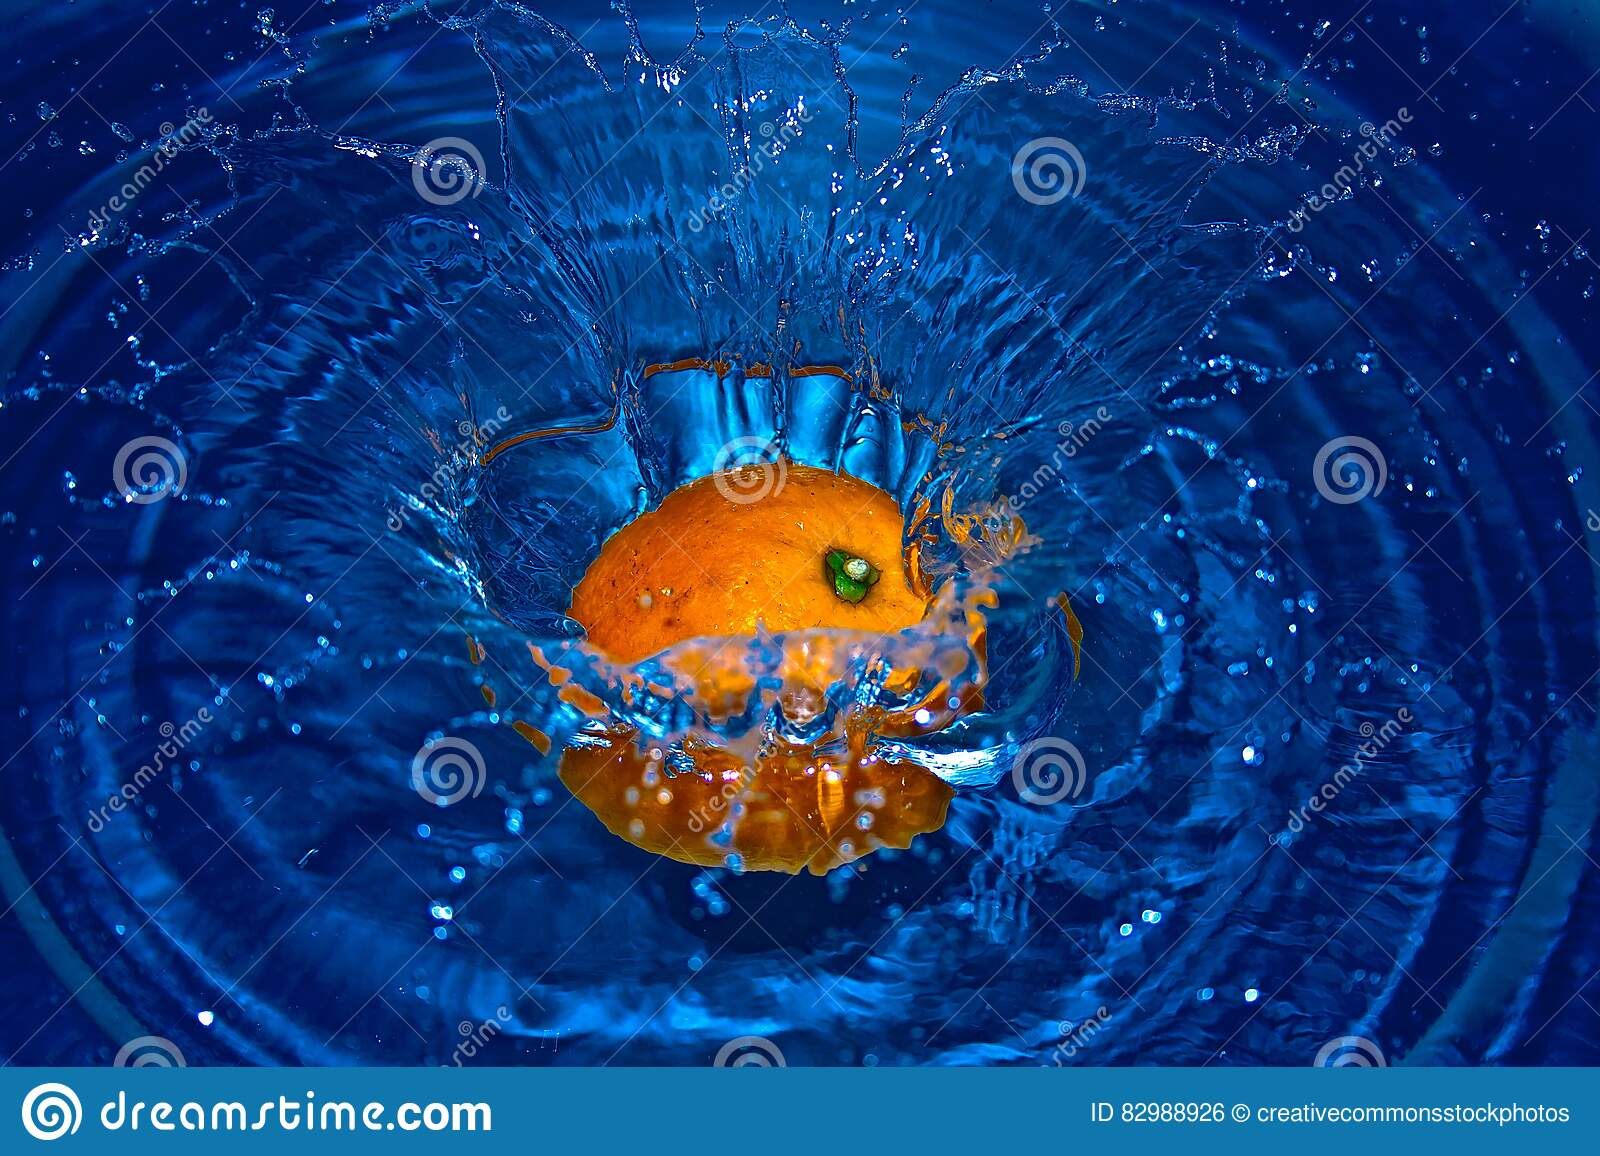 Orange Drop in Water in Time Laps Photography